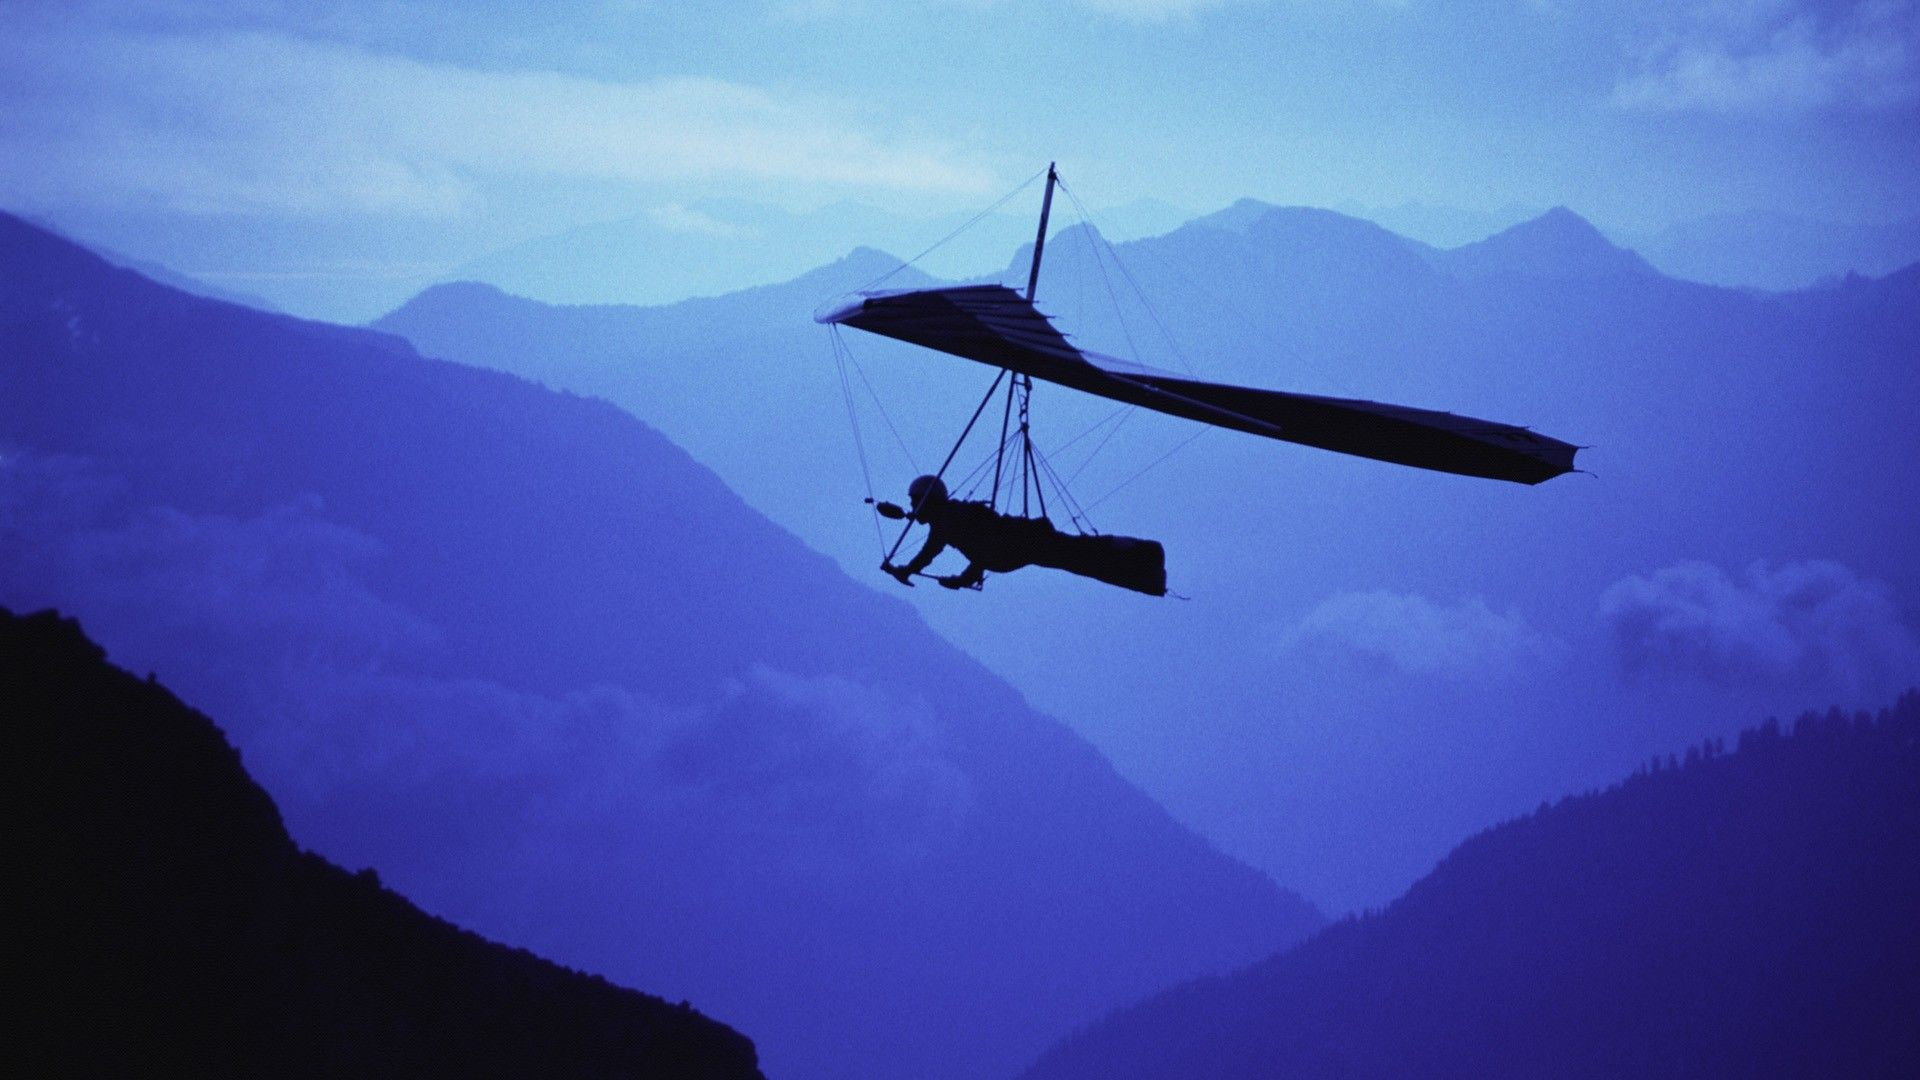 1920x1080 Image detail for -Hang glider over the mountains | Wallpapers To ...